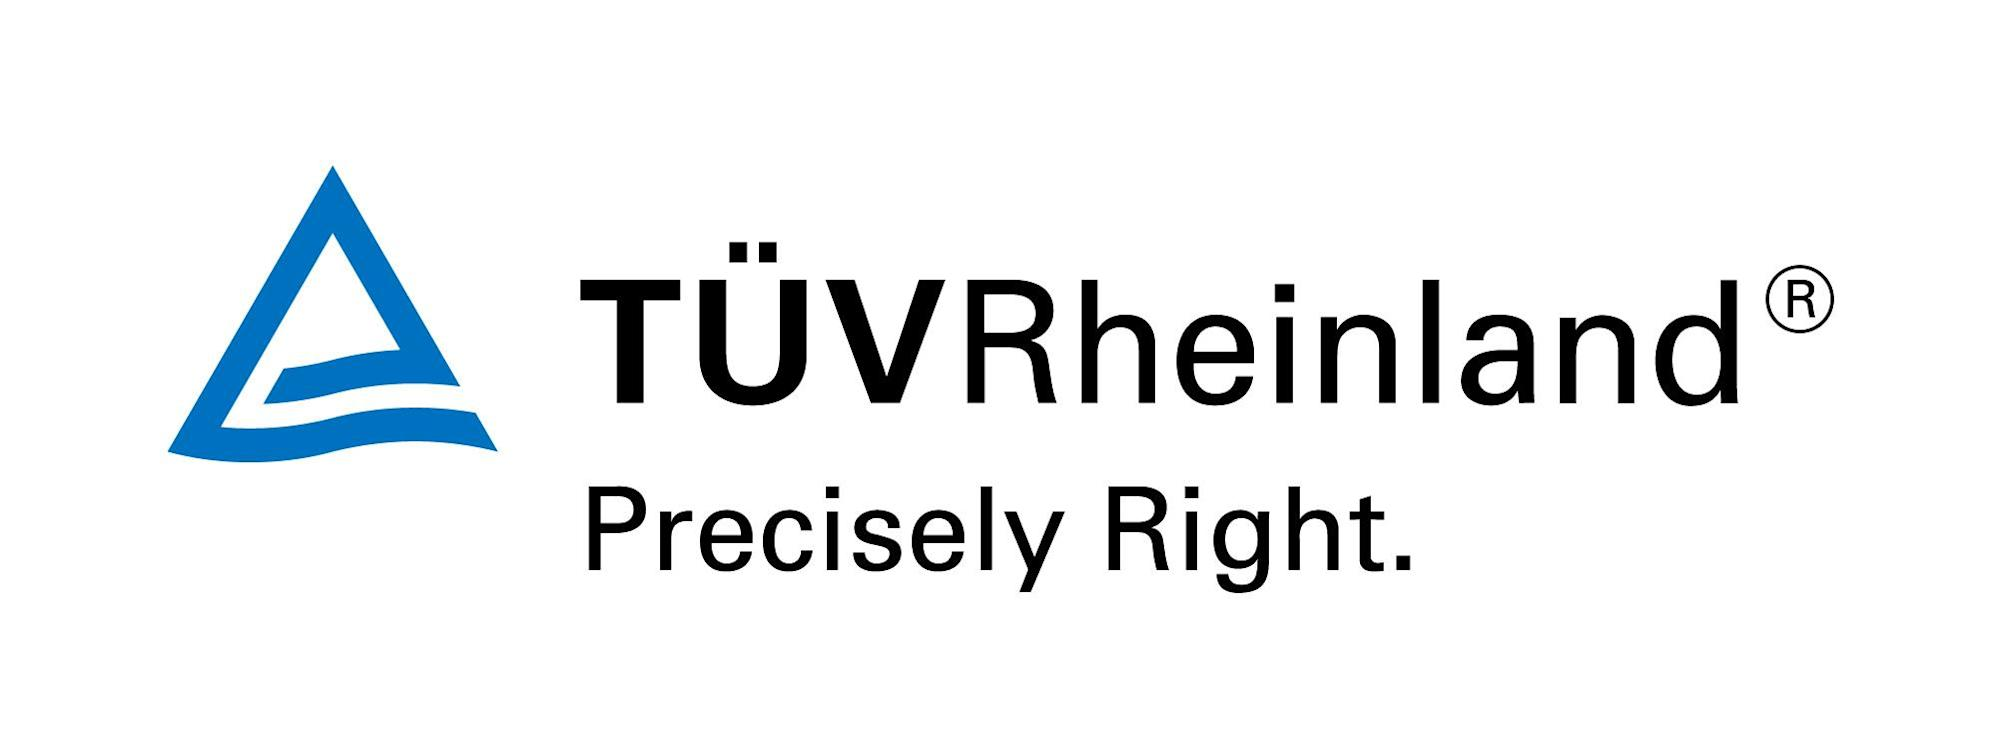 TUV Rheinland Adds State-of-the-Art 3m Semi-Anechoic Chamber to IoT/Wireless Excellence Center